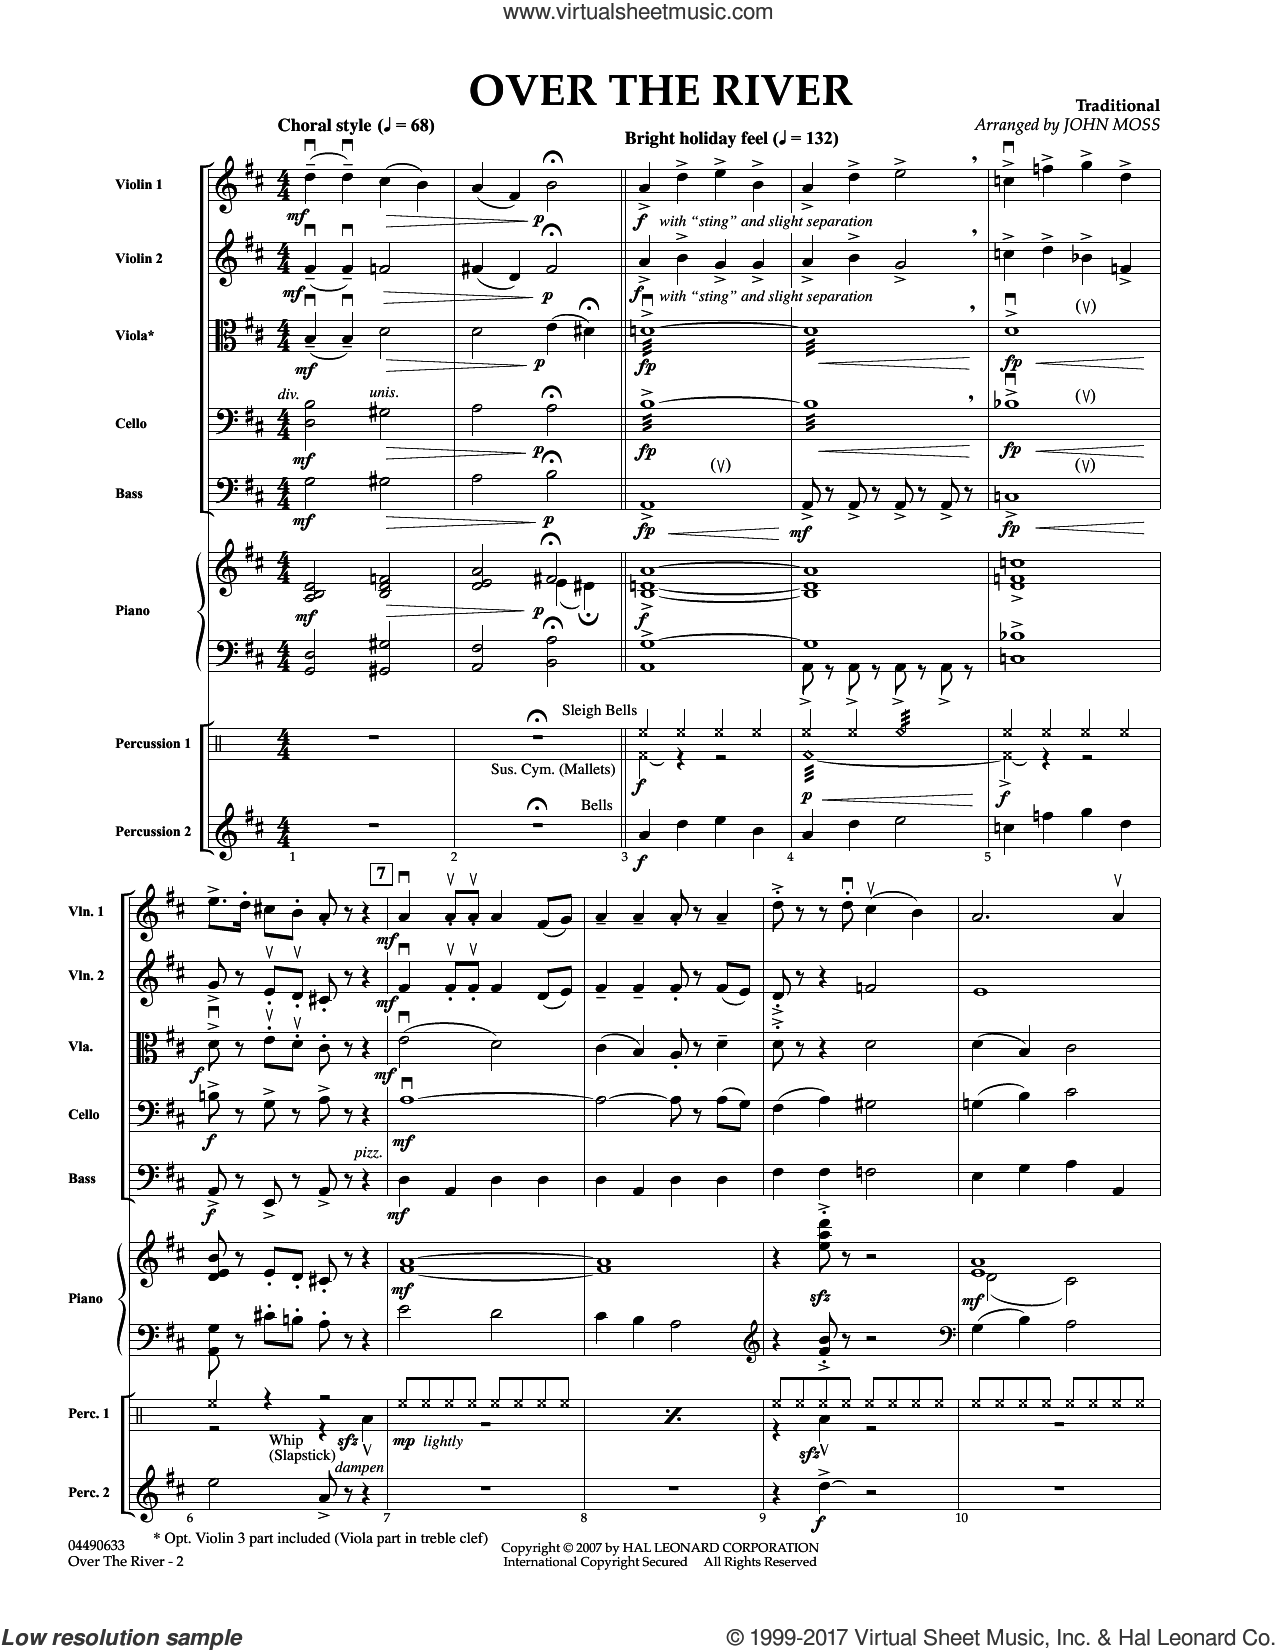 Over The River (COMPLETE) sheet music for orchestra by John Moss, Christmas carol score, intermediate orchestra. Score Image Preview.